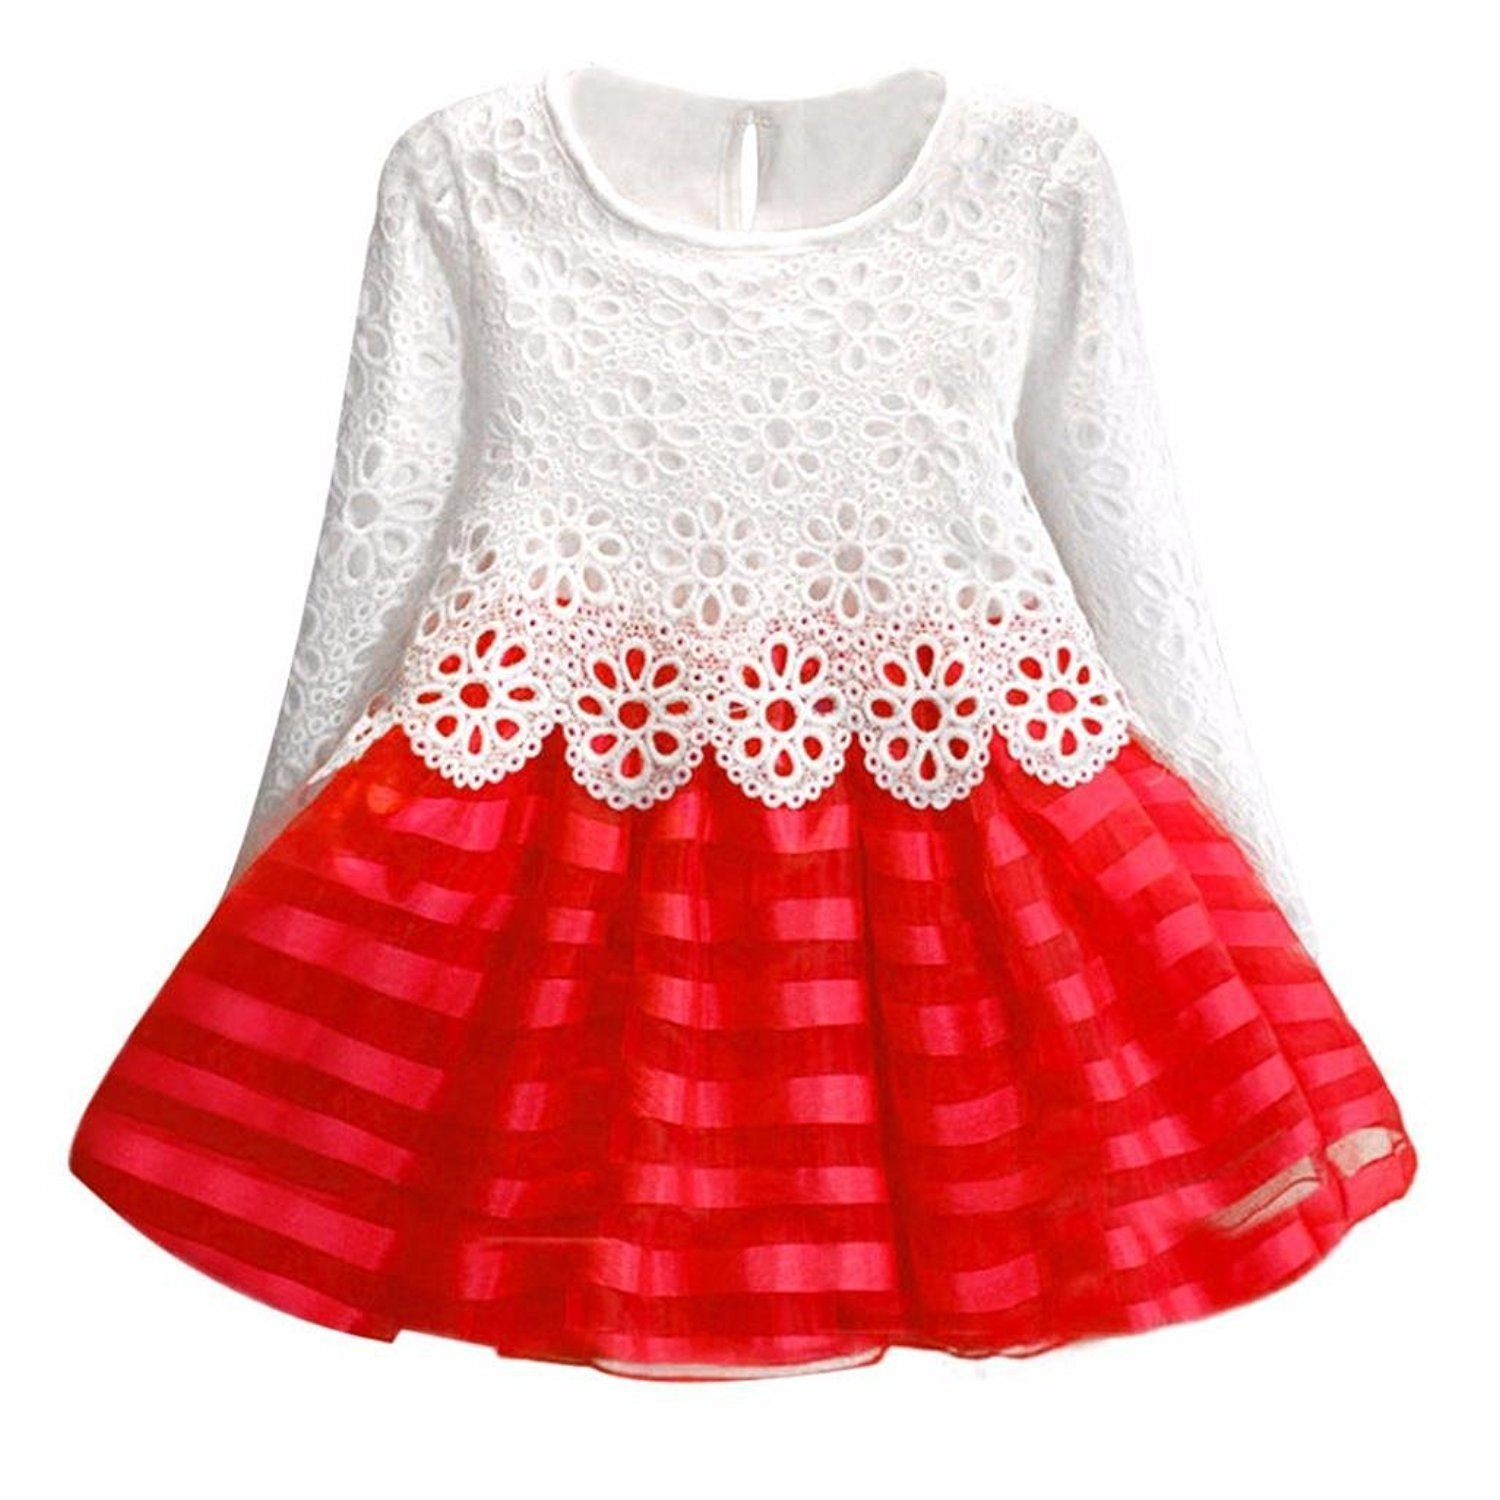 Fulltime(TM) Girls Long Sleeve Princess Dress Hollow Flower Girl Dress 2 to 7 Years F-7181